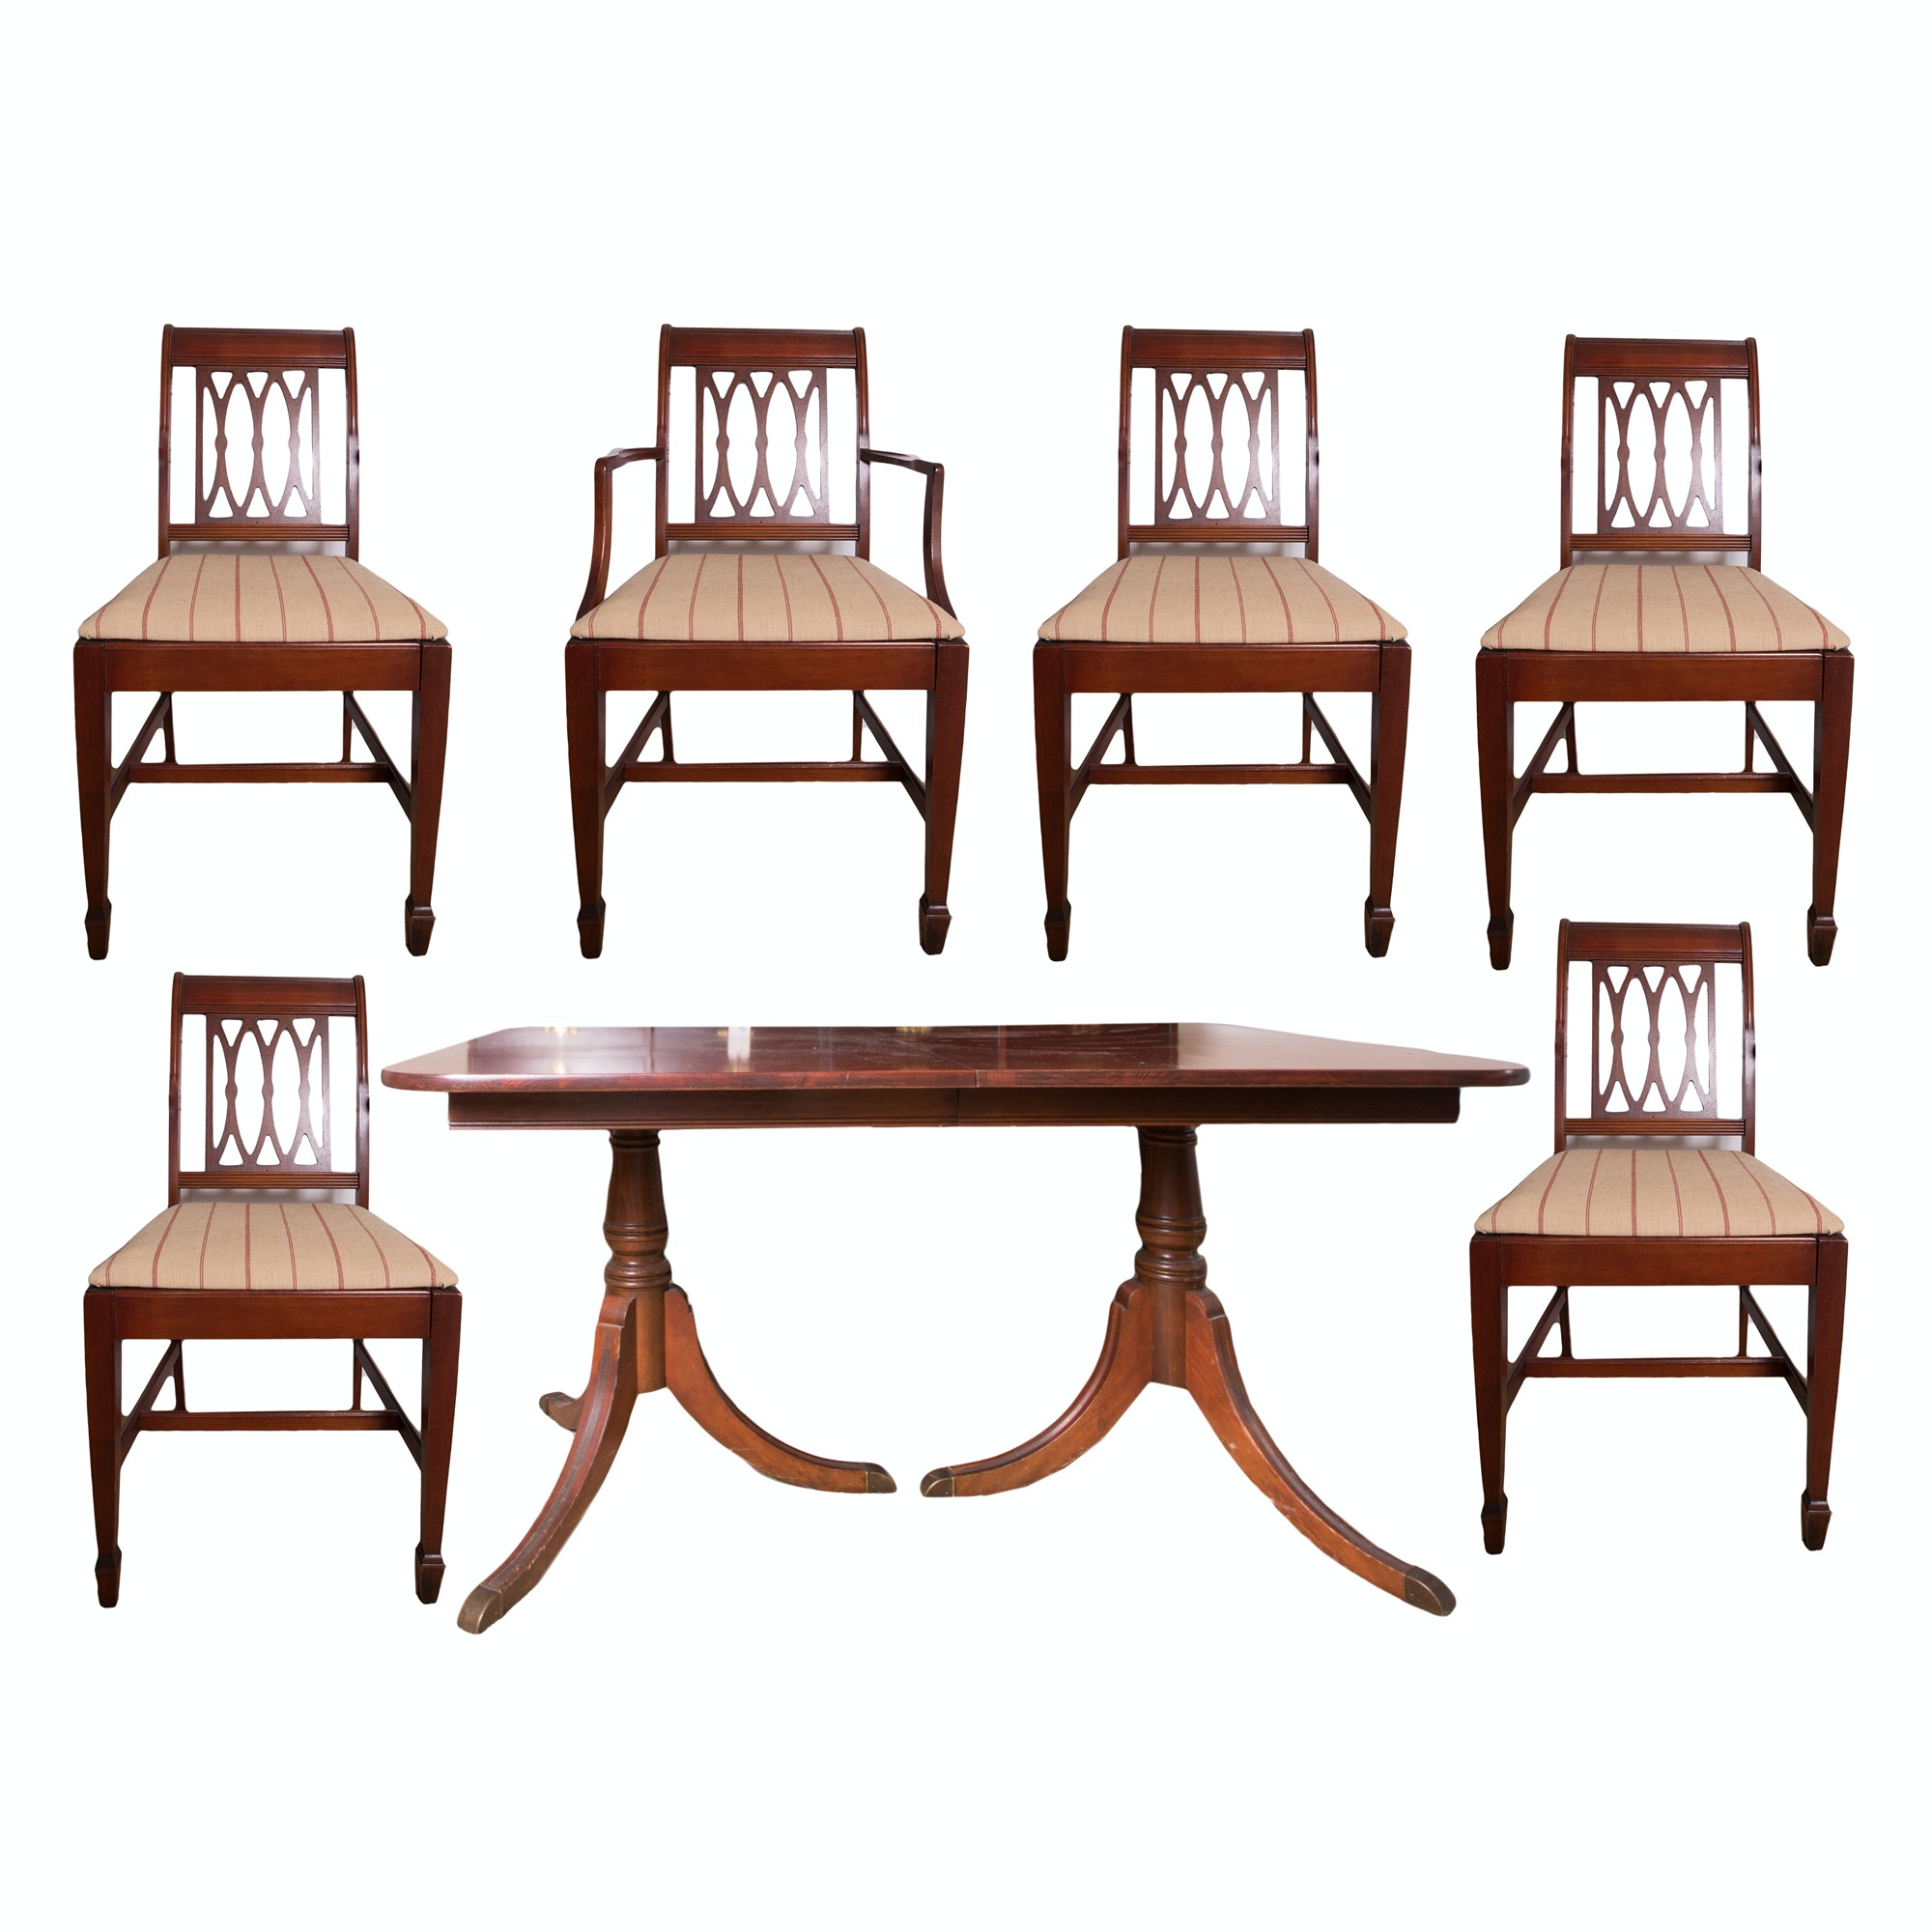 Duncan Phyfe Style Dining Table and Chairs